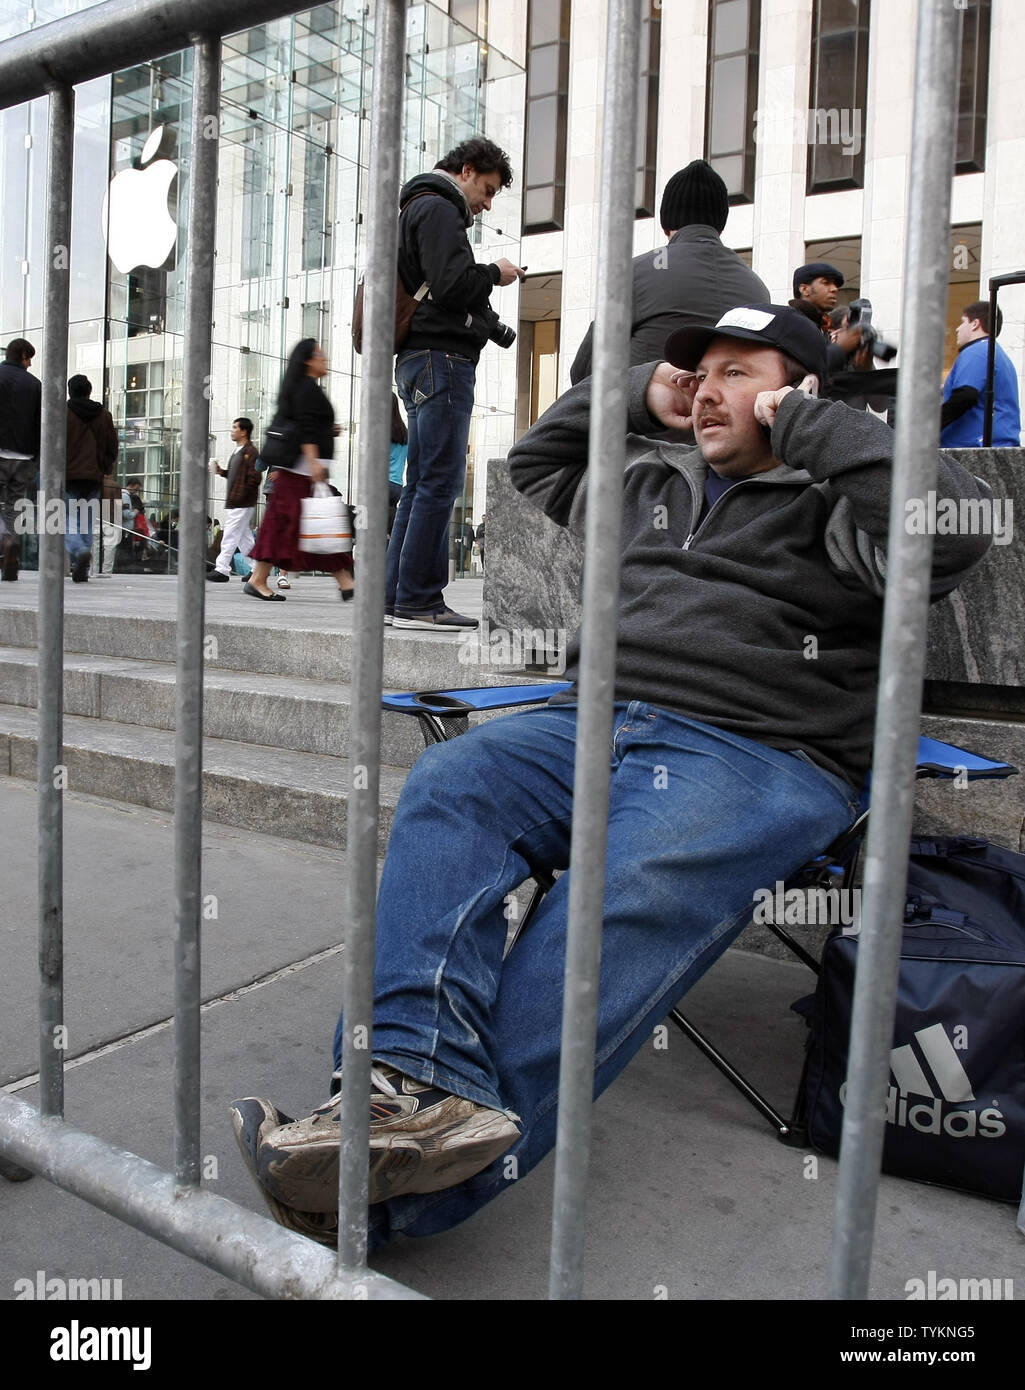 Greg Packer of Huntington NY is first on line at the Apple Store on